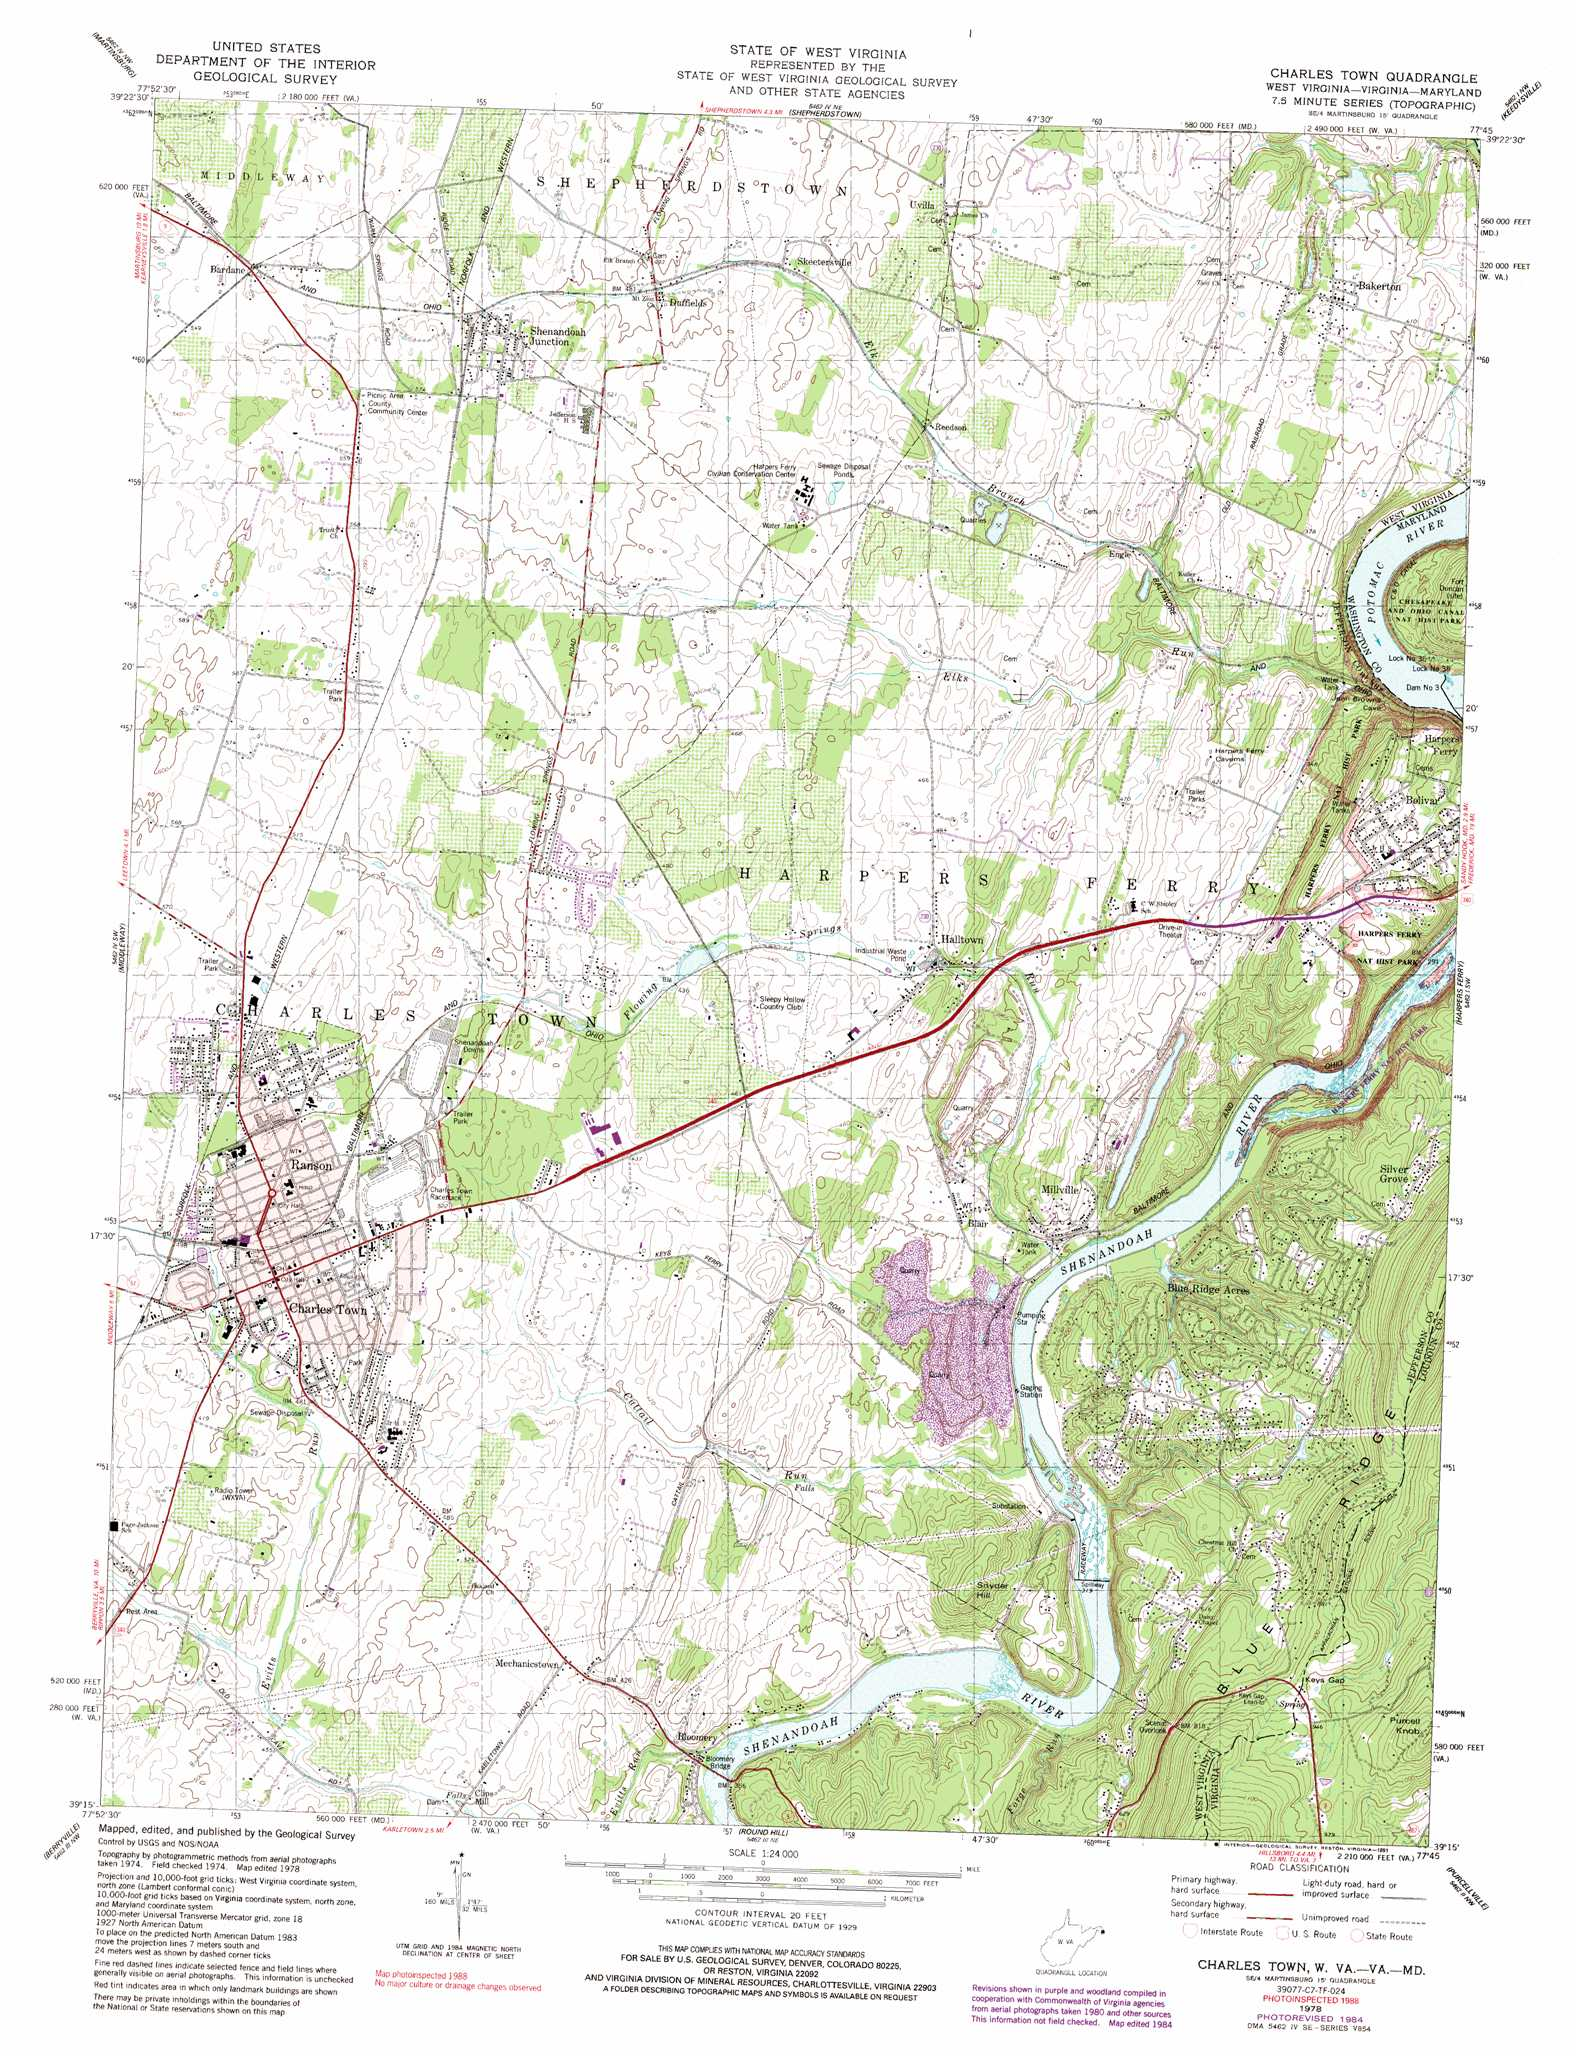 Picture of: Charles Town Topographic Map Wv Va Md Usgs Topo Quad 39077c7